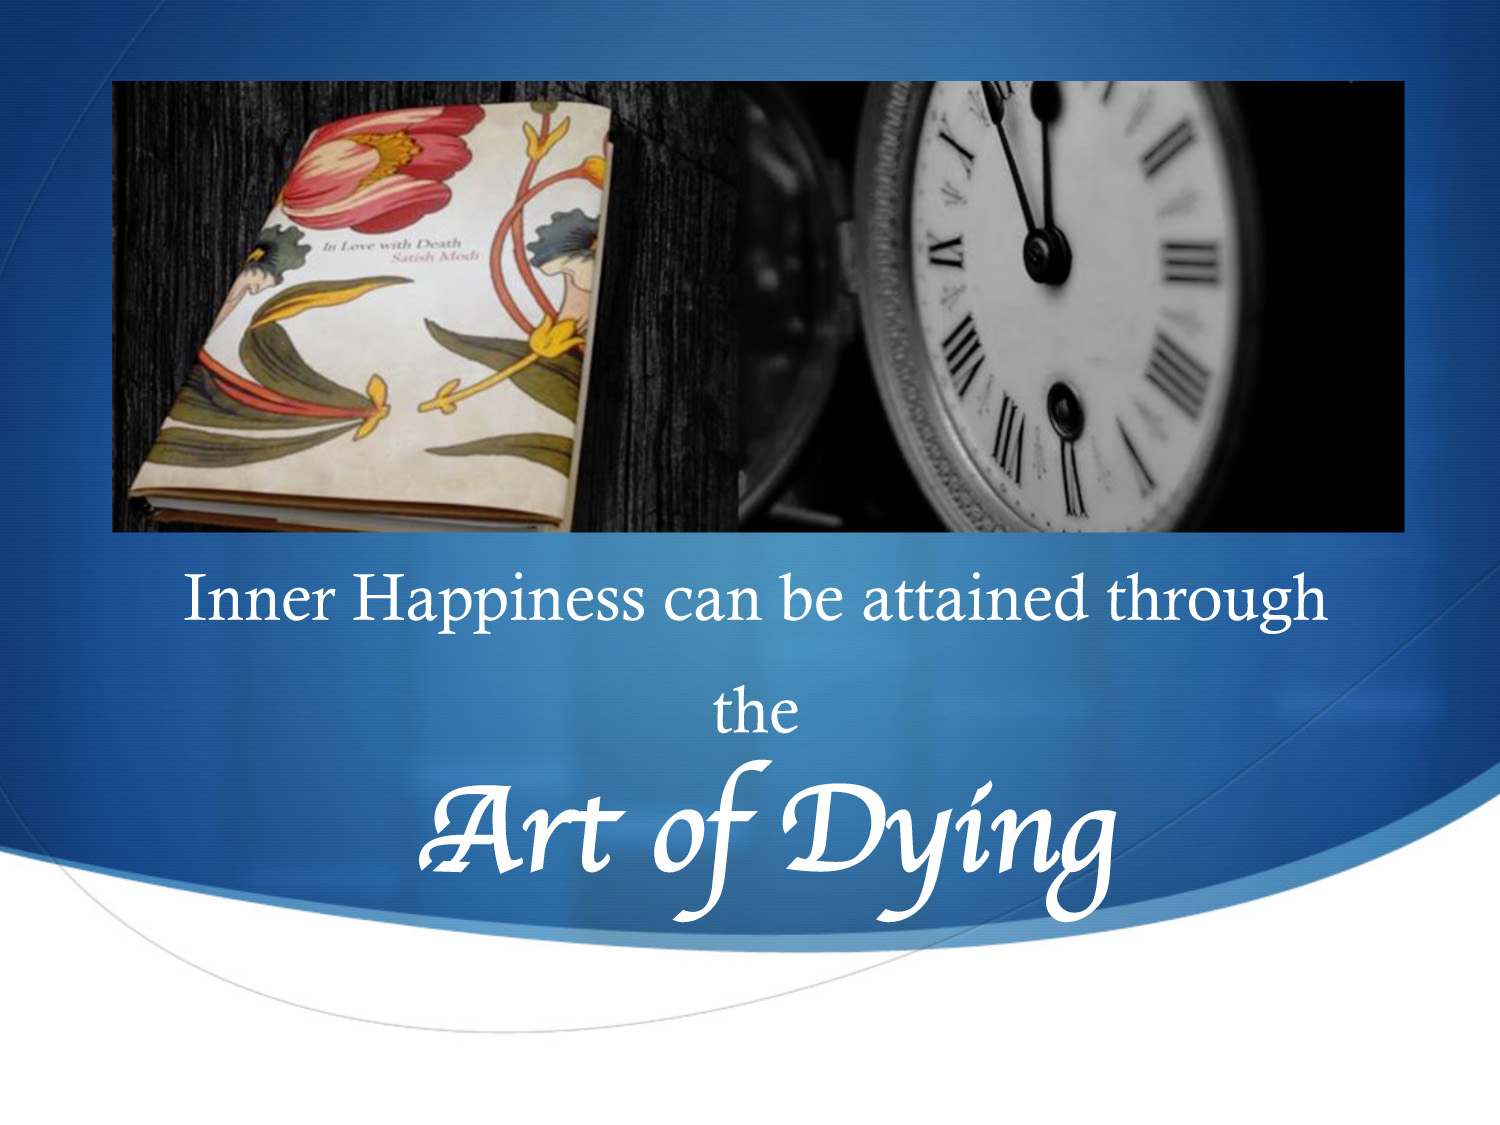 Inner Happiness through the Art of Dying-4